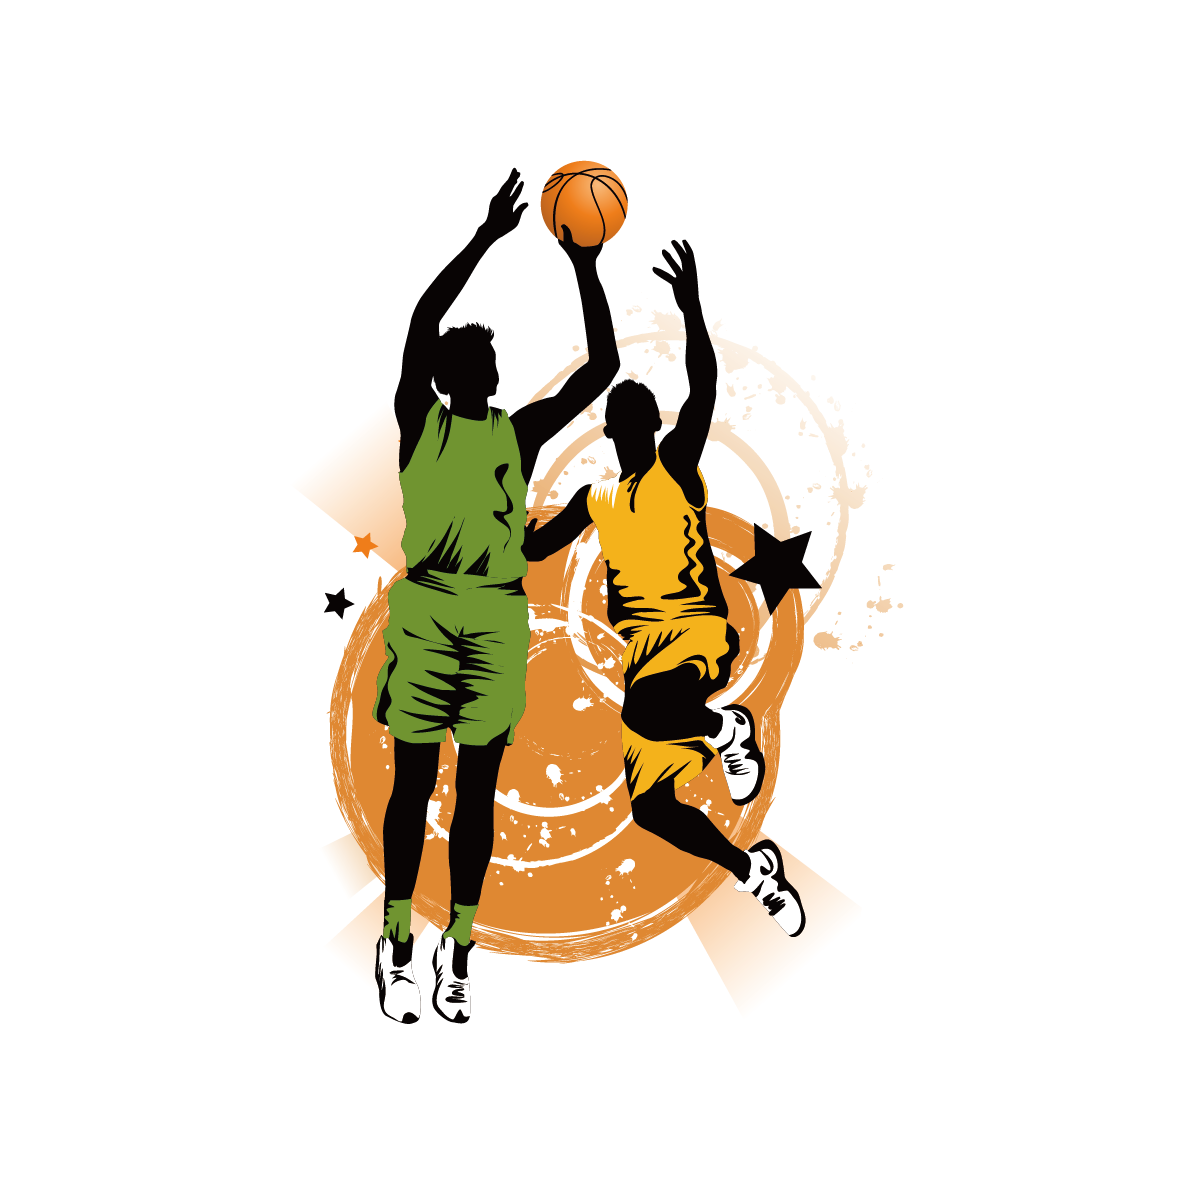 Girl dunking basketball clipart vector royalty free download Slam Dunk Clipart at GetDrawings.com | Free for personal use Slam ... vector royalty free download